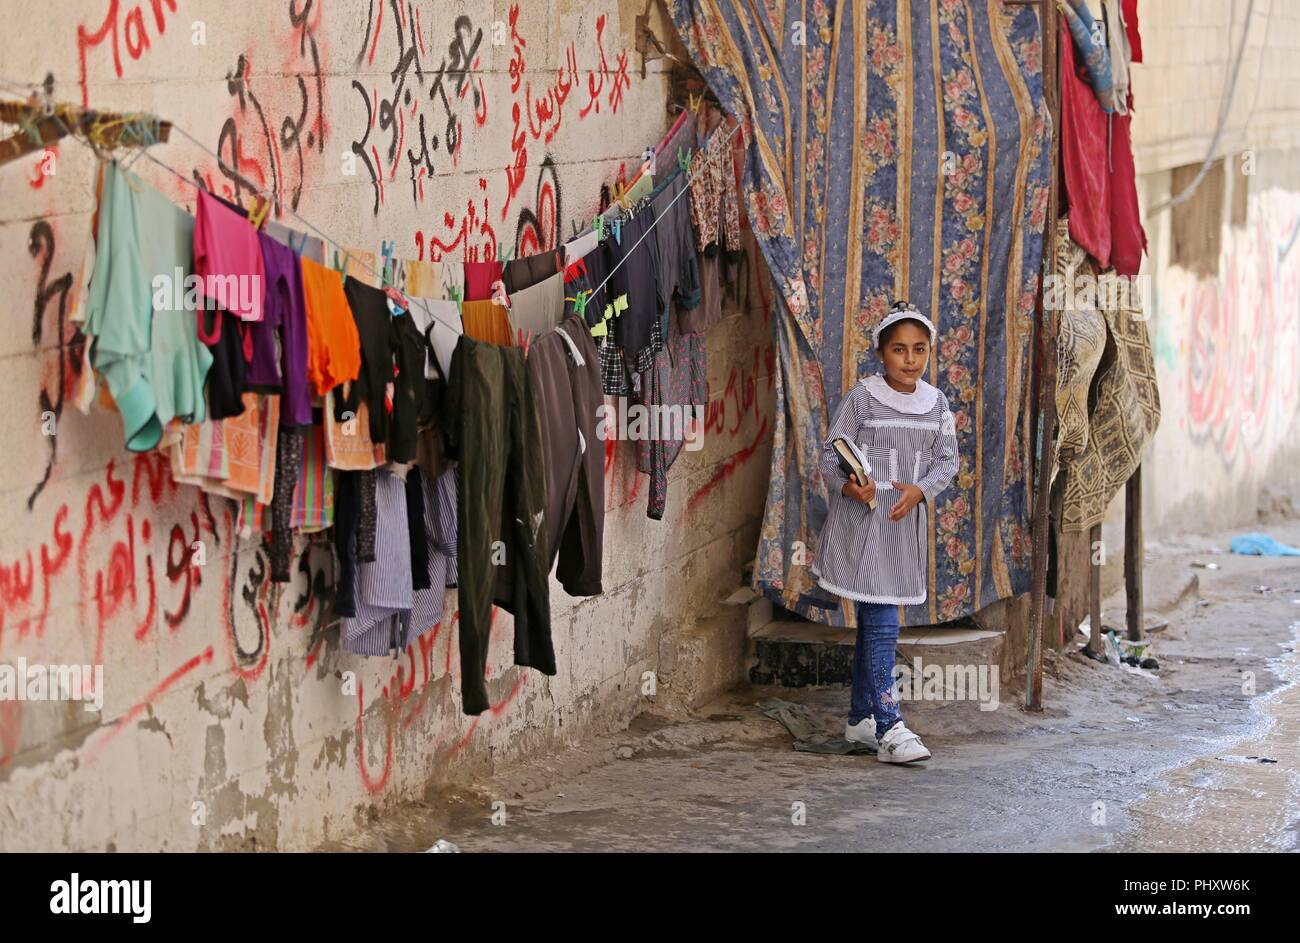 Gaza City, Gaza Strip, Palestinian Territory. 3rd Sep, 2018. A Palestinian refugee girl stands in a street at Al-Shati refugee camp, in Gaza City on September 3, 2018. The United States halted all funding to United Nations' agency that helps Palestinian refugees. State Department spokeswoman Heather Nauert said the business model and fiscal practices of the United Nations Relief and Works Agency (UNRWA) made it an 'irredeemably flawed operation Credit: Ashraf Amra/APA Images/ZUMA Wire/Alamy Live News - Stock Image